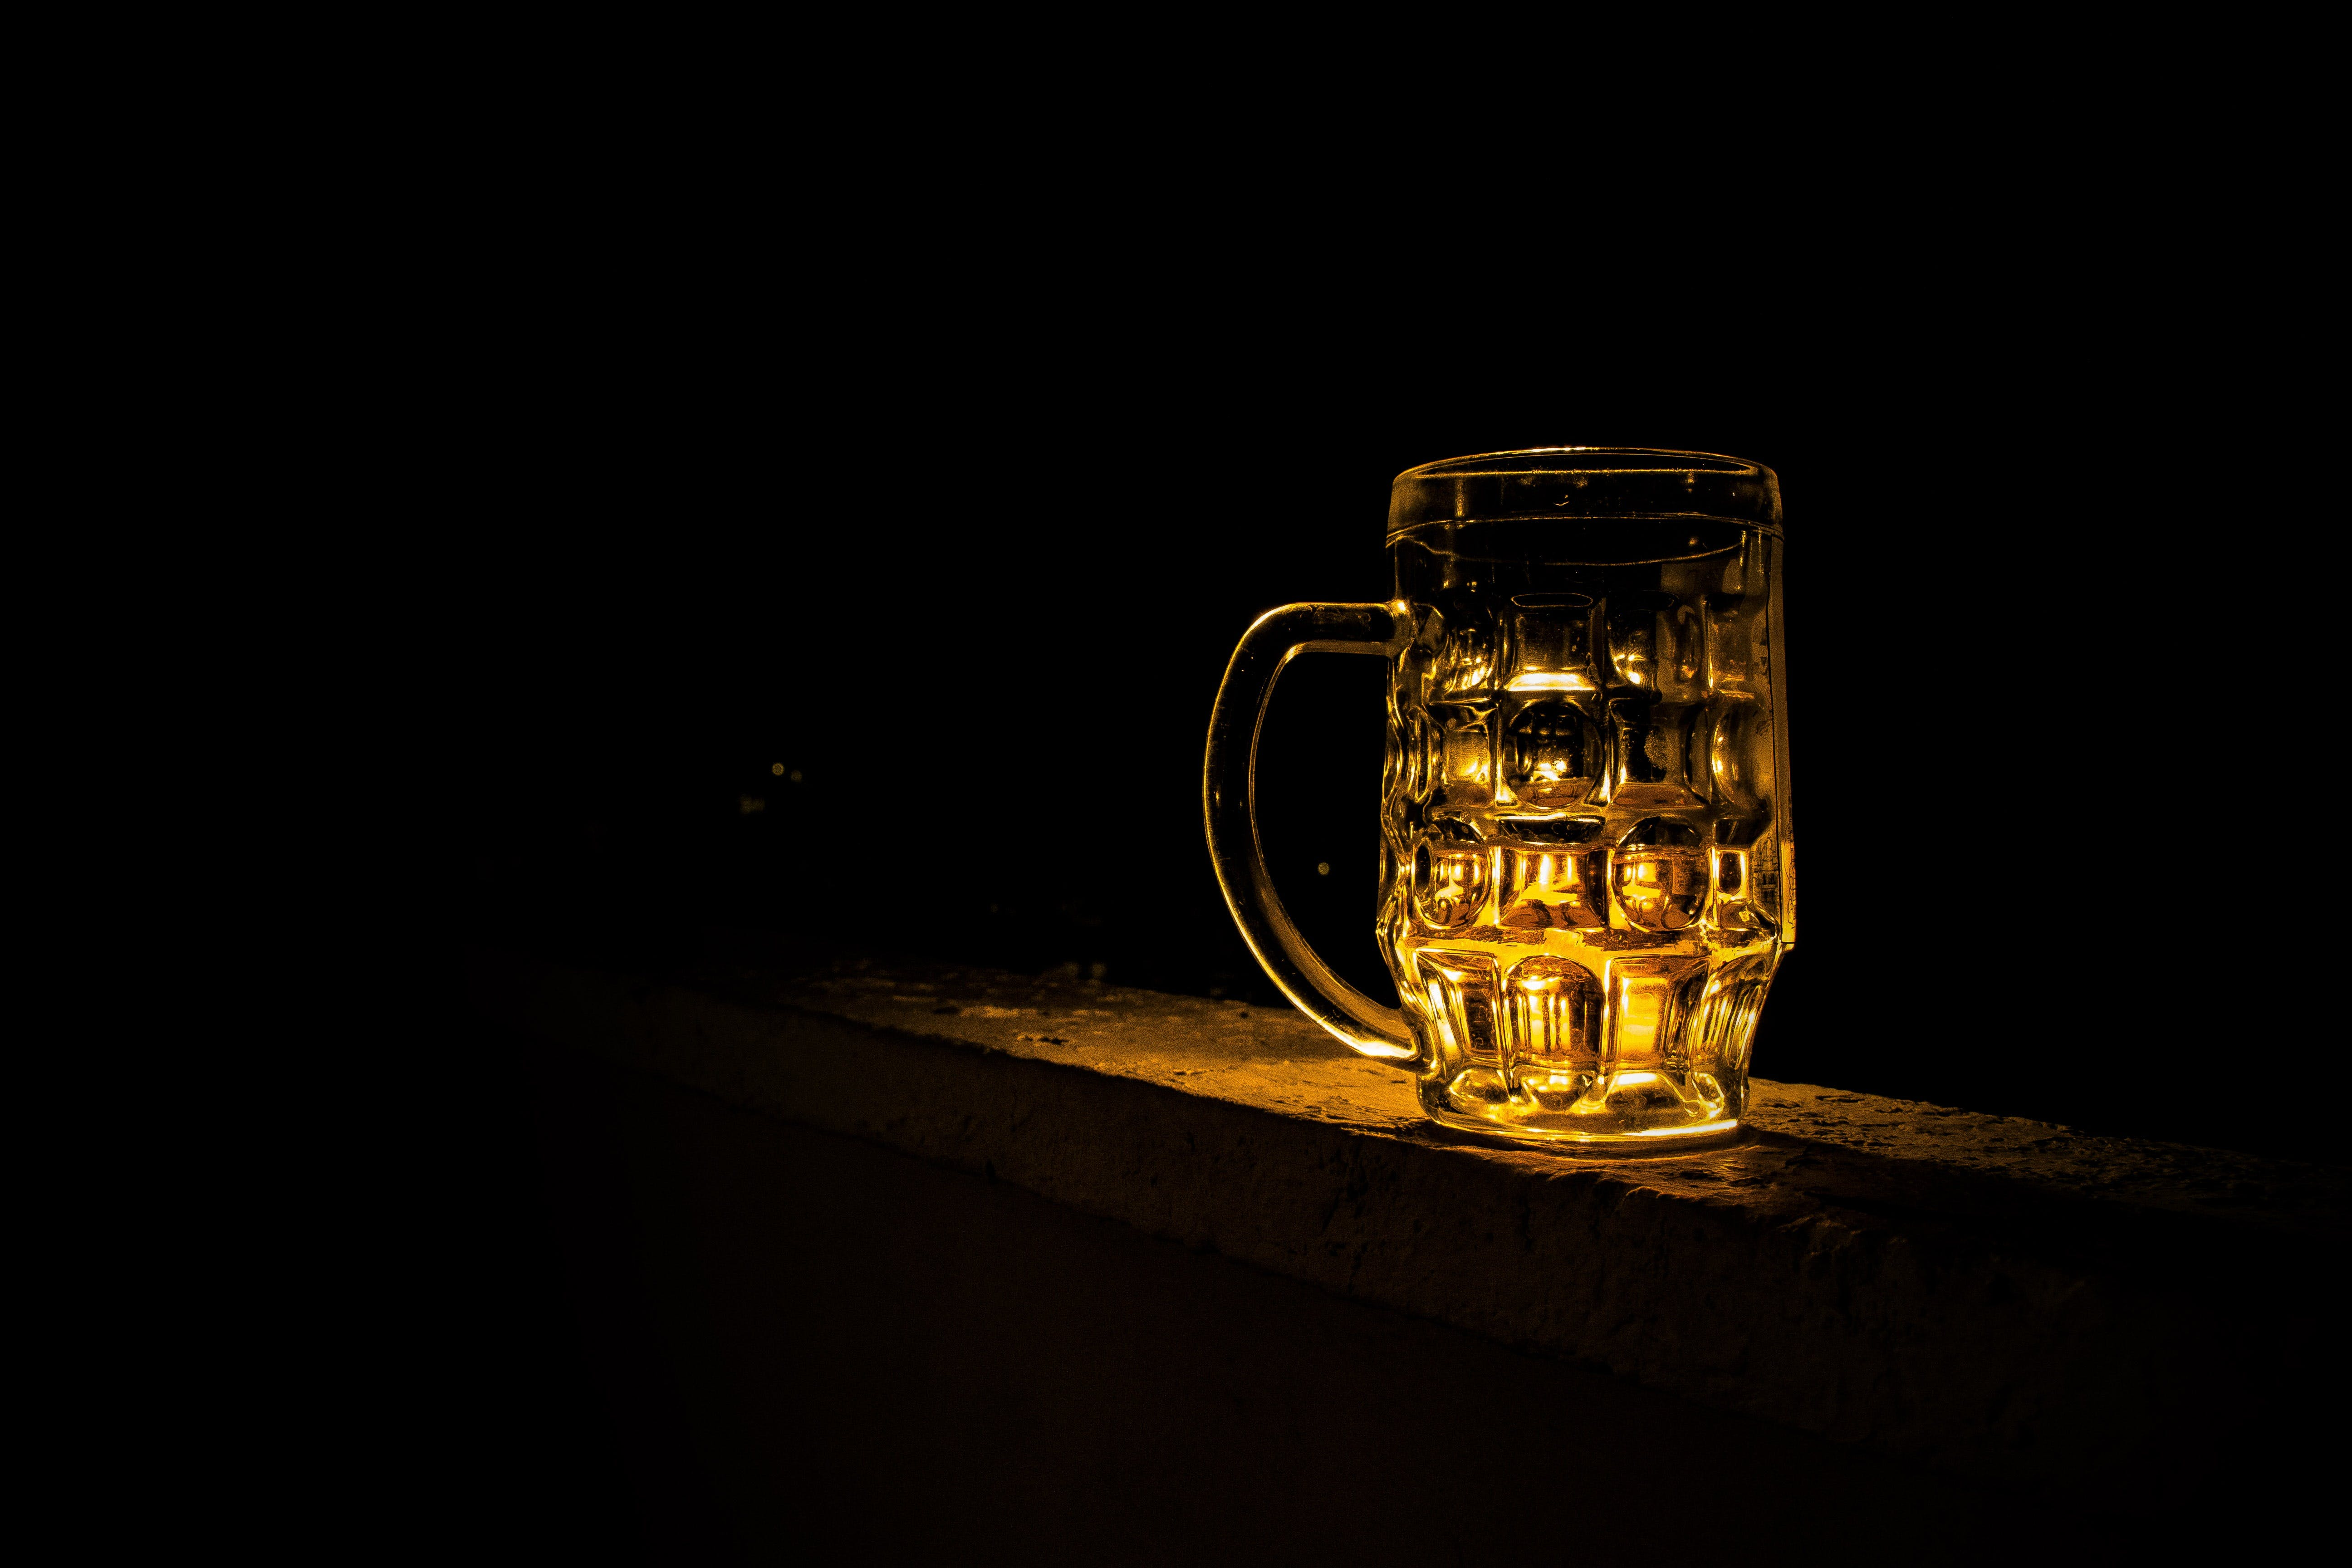 Clear Glass Mug With Beverage during Night Time